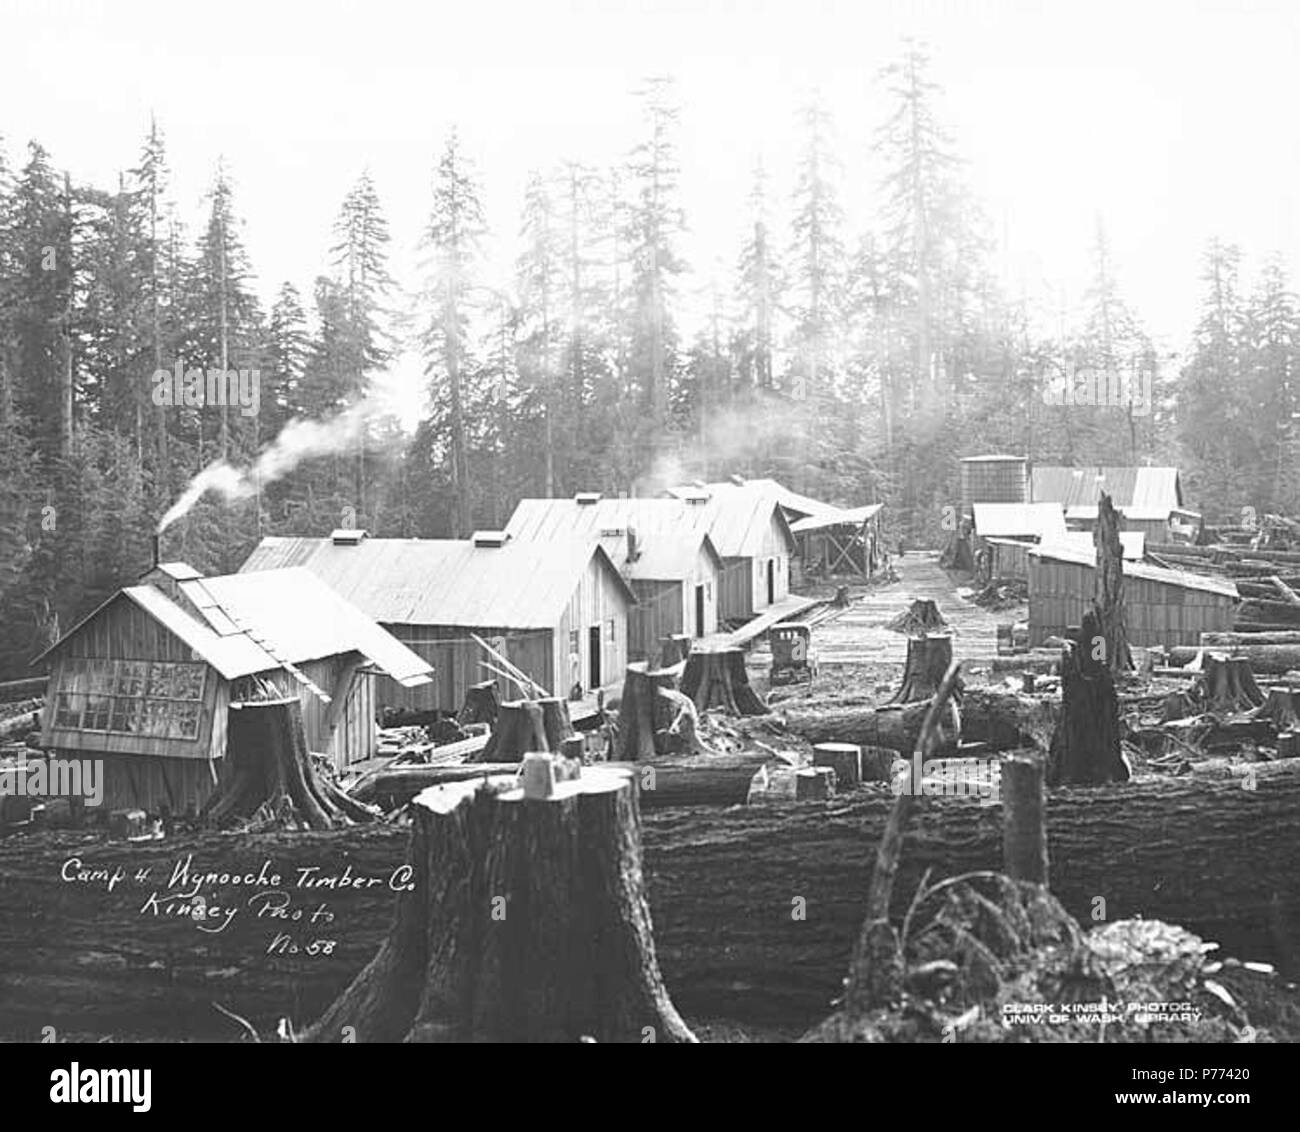 . English: Logging camp no. 4, showing saw filer's shop with windows, bunkhouses, car, and water tank, Wynooche Timber Company, ca. 1921 . English: Caption on image: Camp 4, Wynooche Timber Co. Kinsey Photo No. 58 PH Coll 516.5191 The Wynooche Timber Company began operations ca. 1913 with headquarters in Hoquiam and logging operations in Montesano. It was named for Wynooche Valley in northeast Grays Harbor County. Wynooche Timber Company was bought out by Schafer Brothers Logging Company ca. 1927. Subjects (LCTGM): Lumber camps--Washington (State); Workshops--Washington (State); Automobiles--W - Stock Image